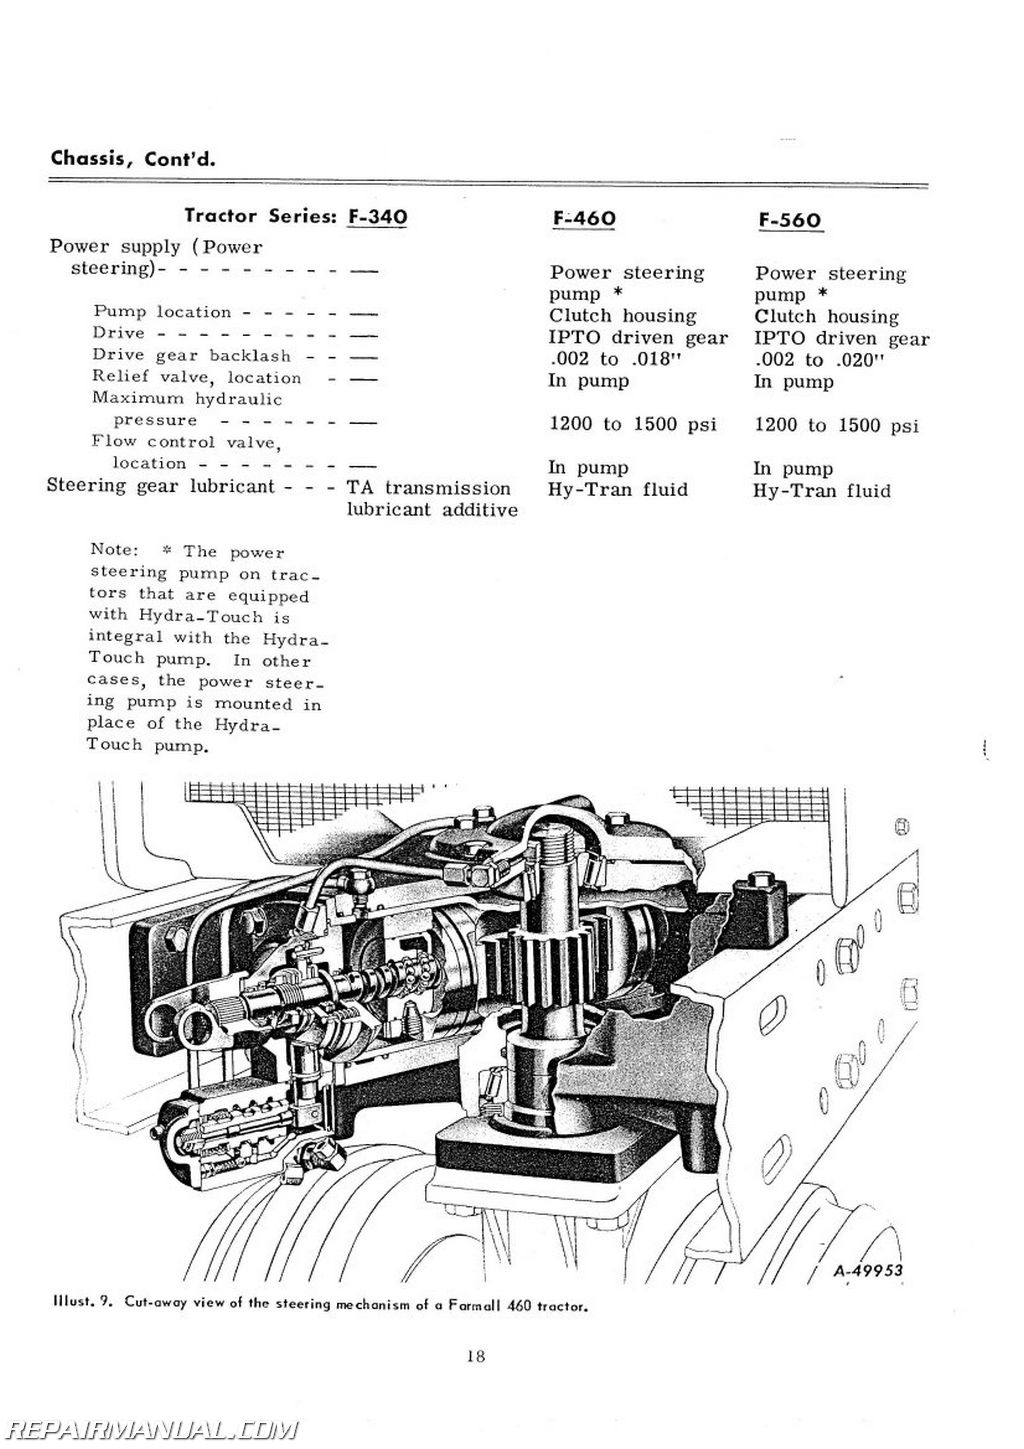 hight resolution of 1206 international tractor wiring diagram schematic wiring library ih farmall 560 farmall 460 transmission diagram schematics